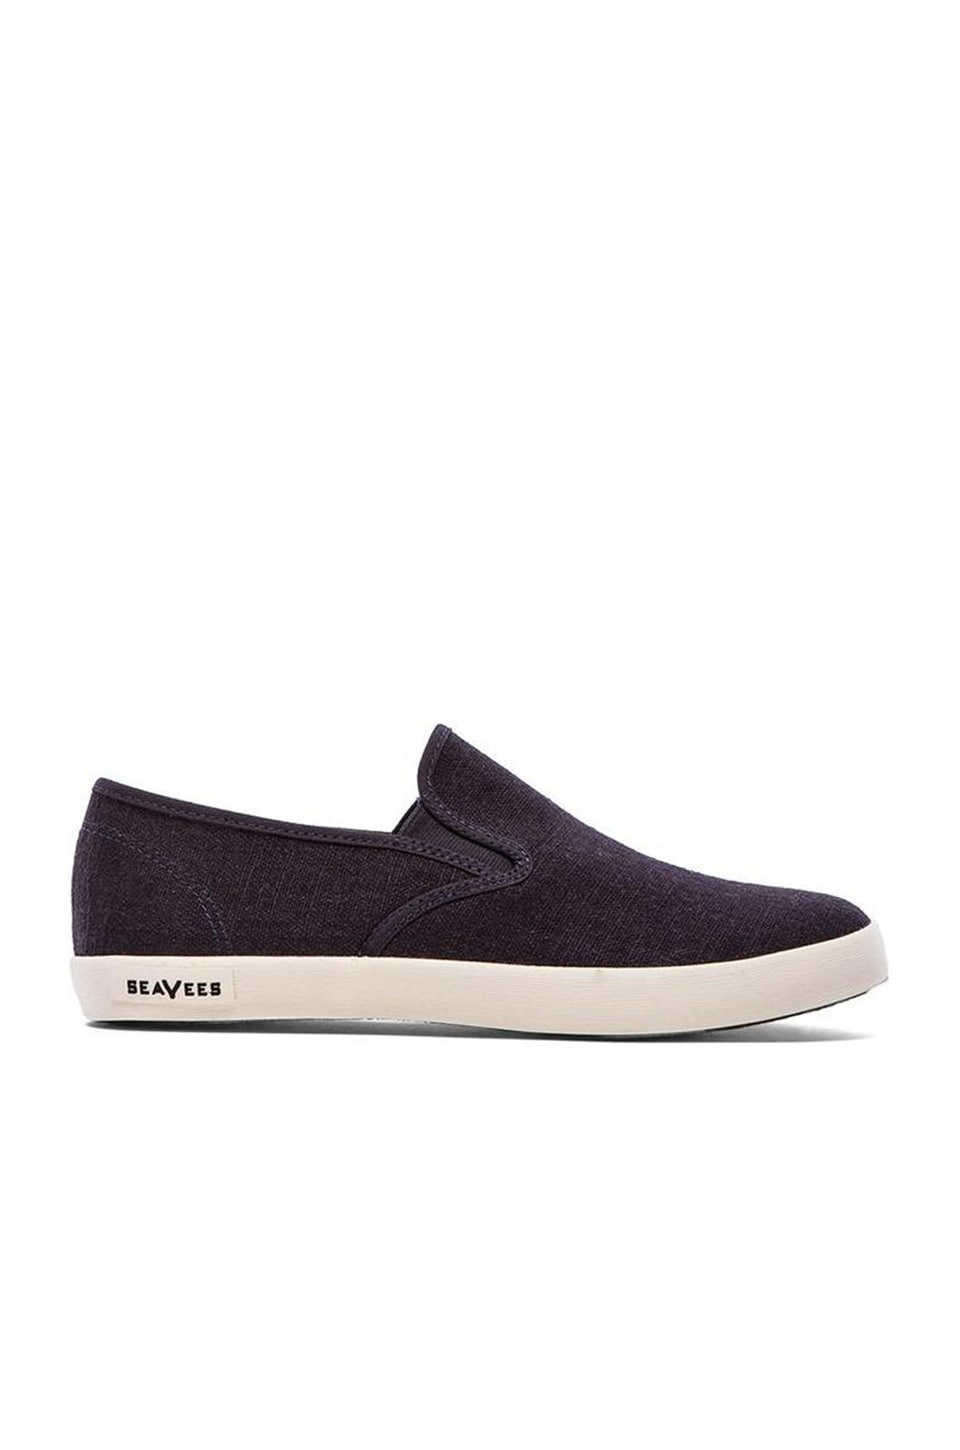 SeaVees 02/64 Baja Slip On in Slate Navy